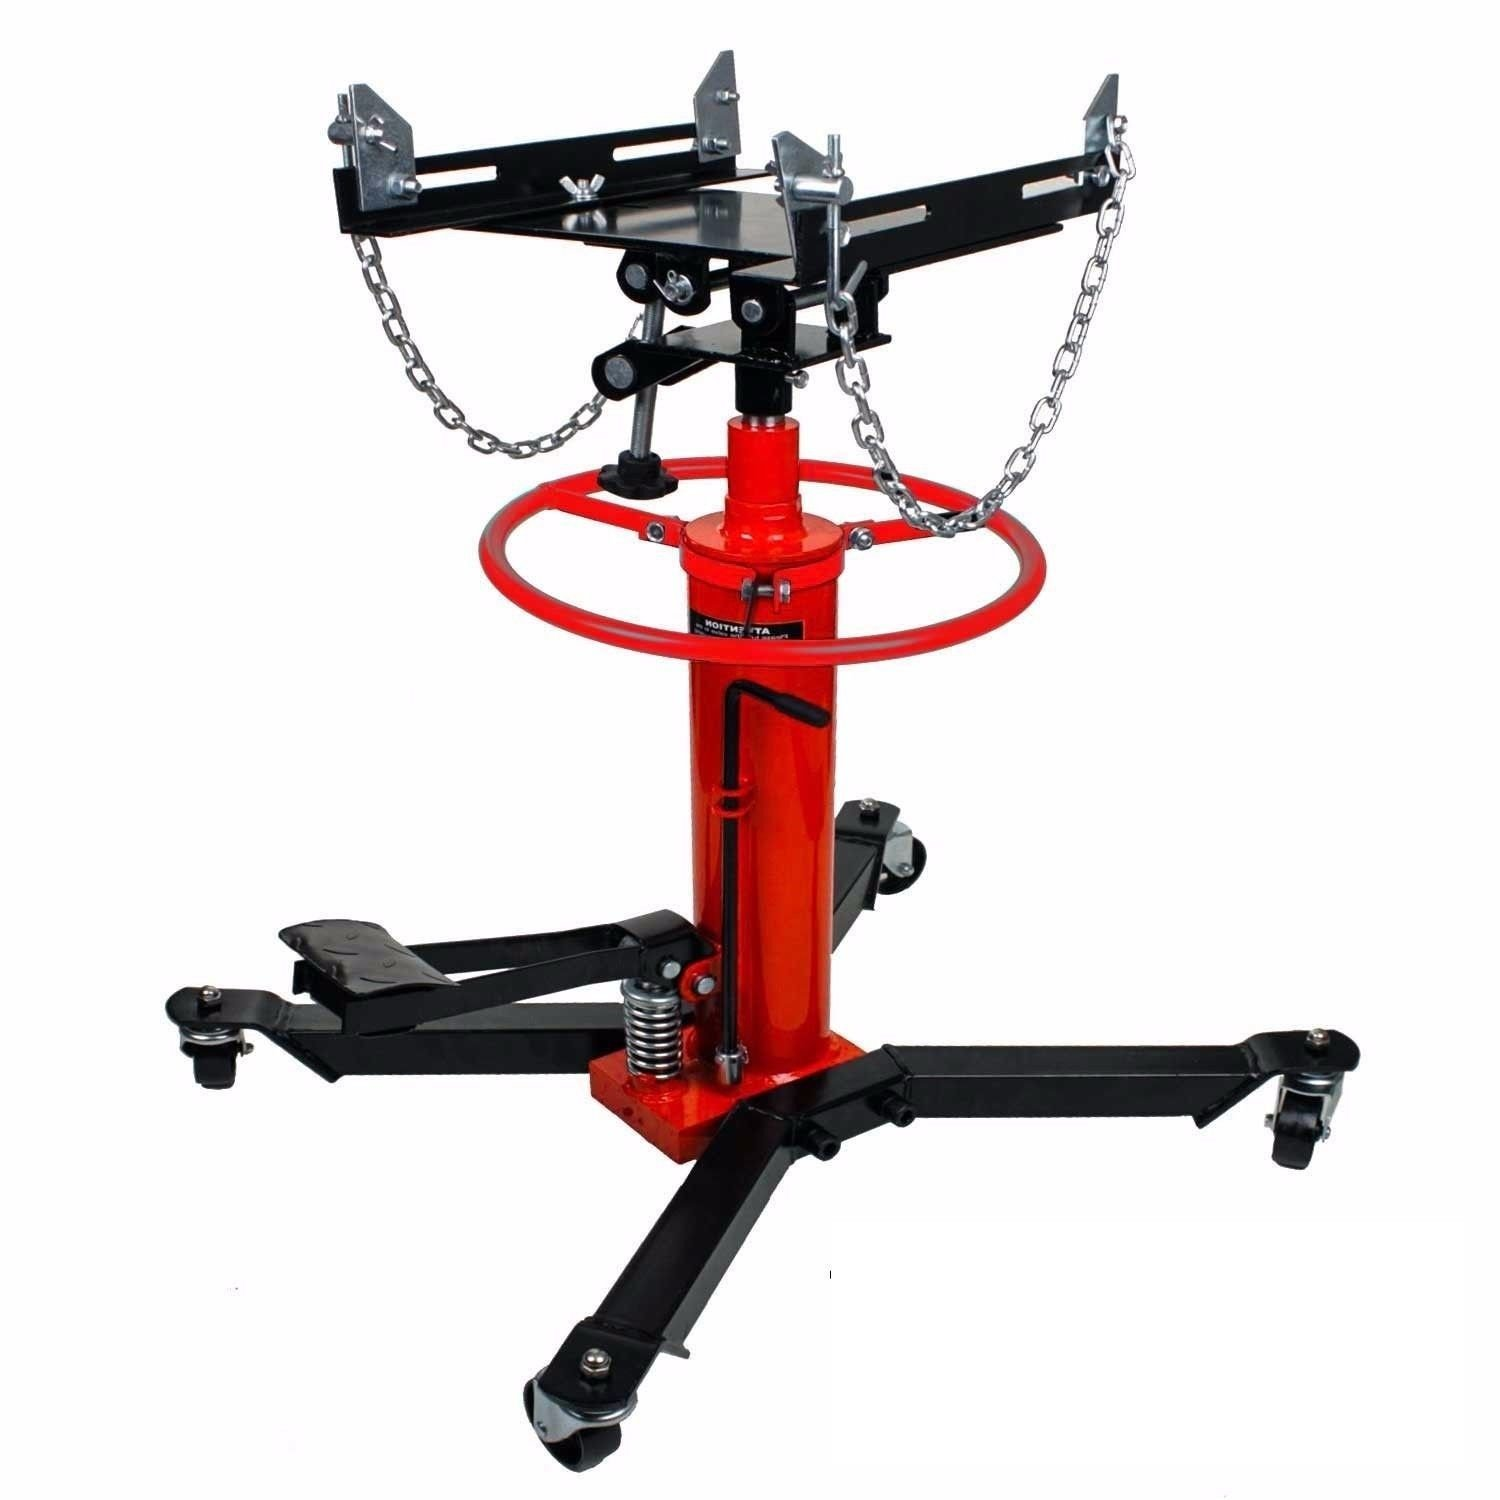 Funwebsurfer - 1660lbs Transmission Jack 2 Stage Hydraulic w/ 360° for car lift auto lift